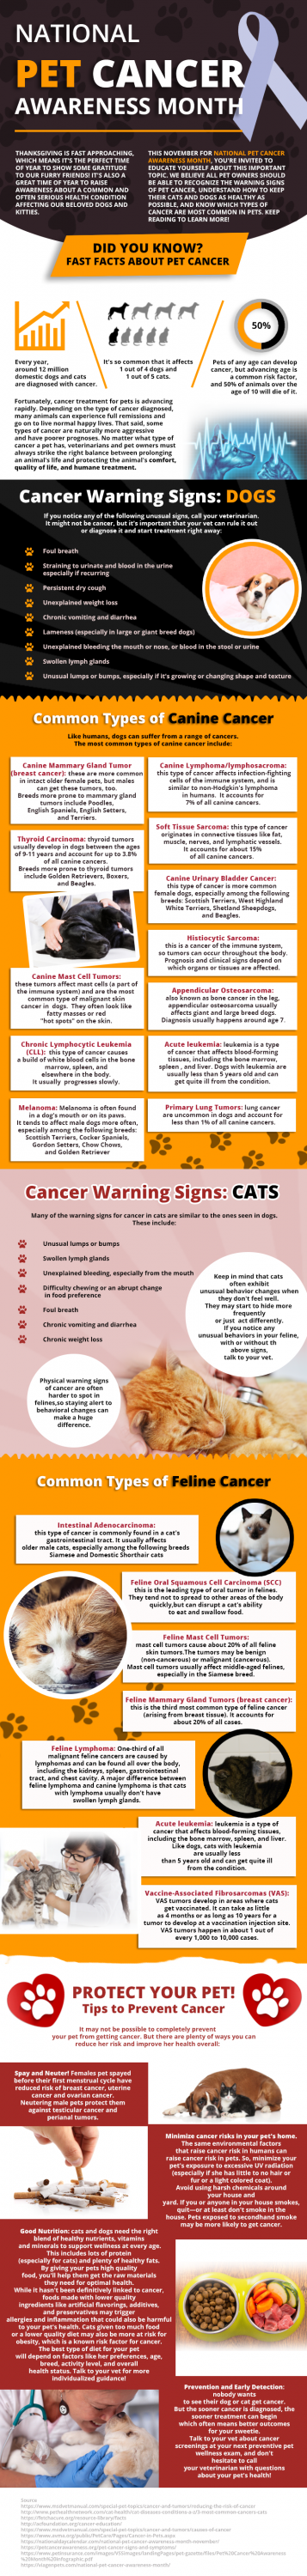 What do you know about pet cancer? I'm betting not as much as you think. Take a look at warning signs for both cats & dogs, as well as some prevention tips for both.